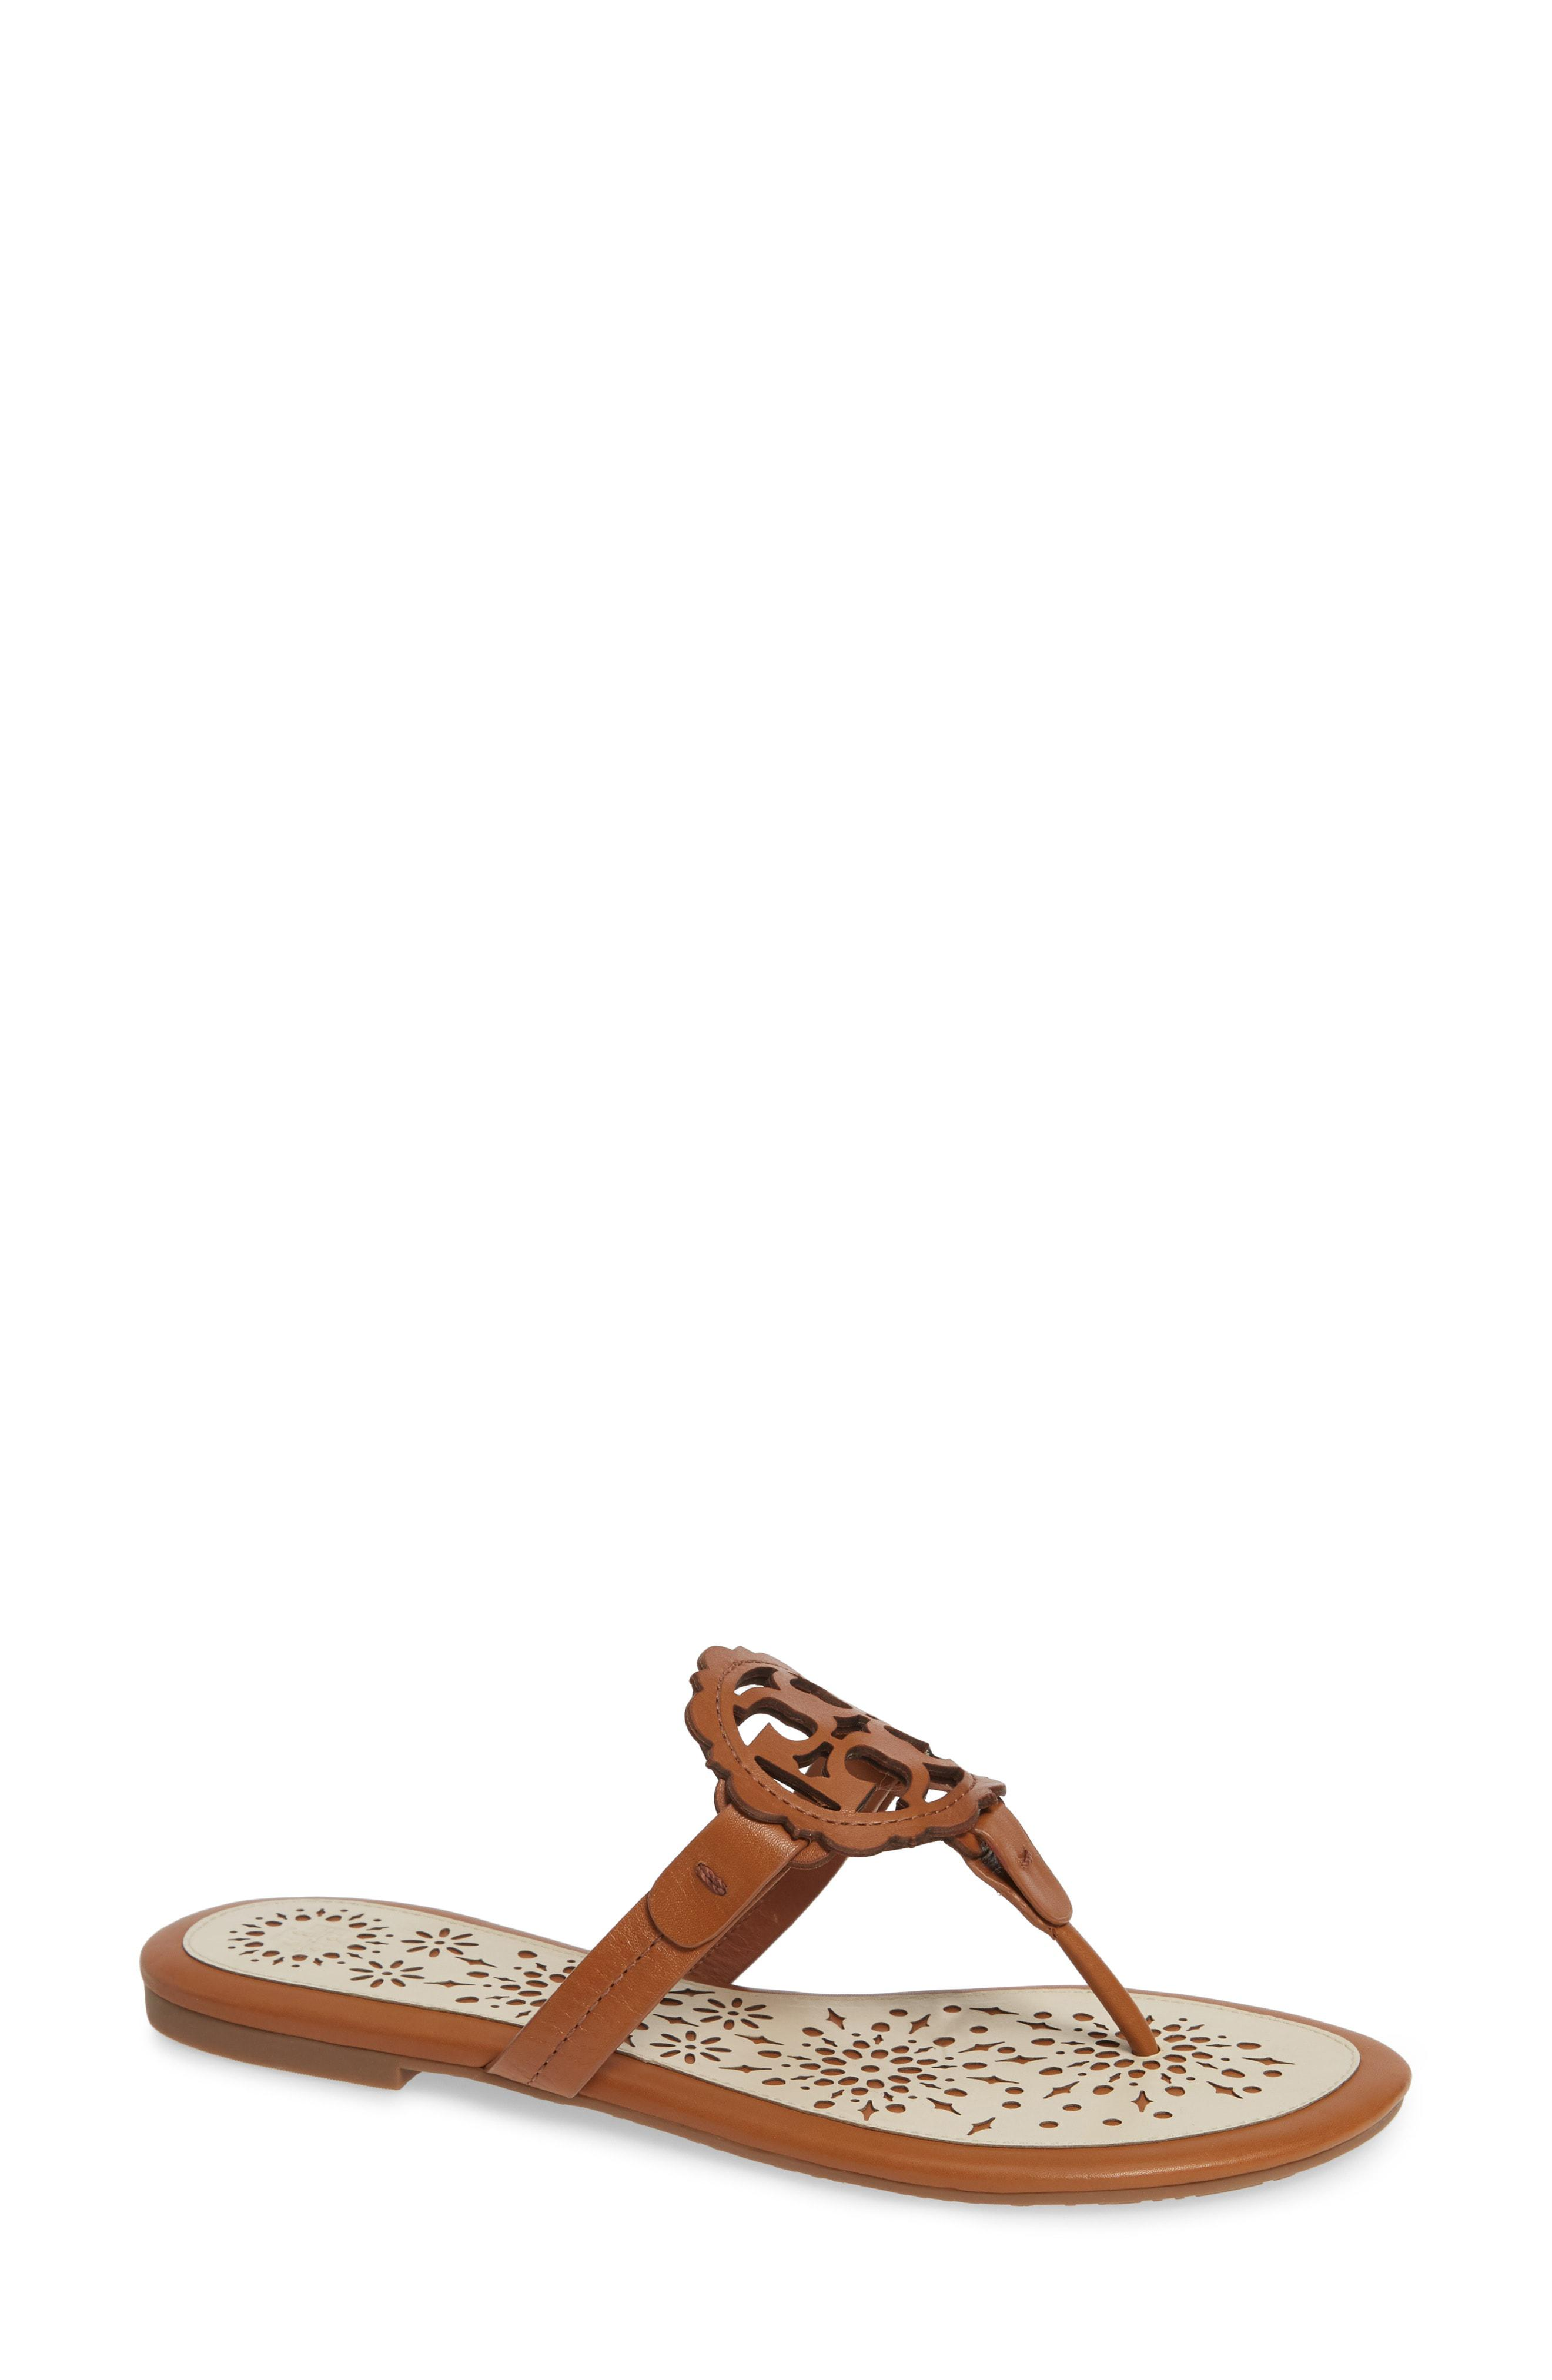 943249efb0f1 Tory Burch. Women s Miller Scalloped Medallion Sandal